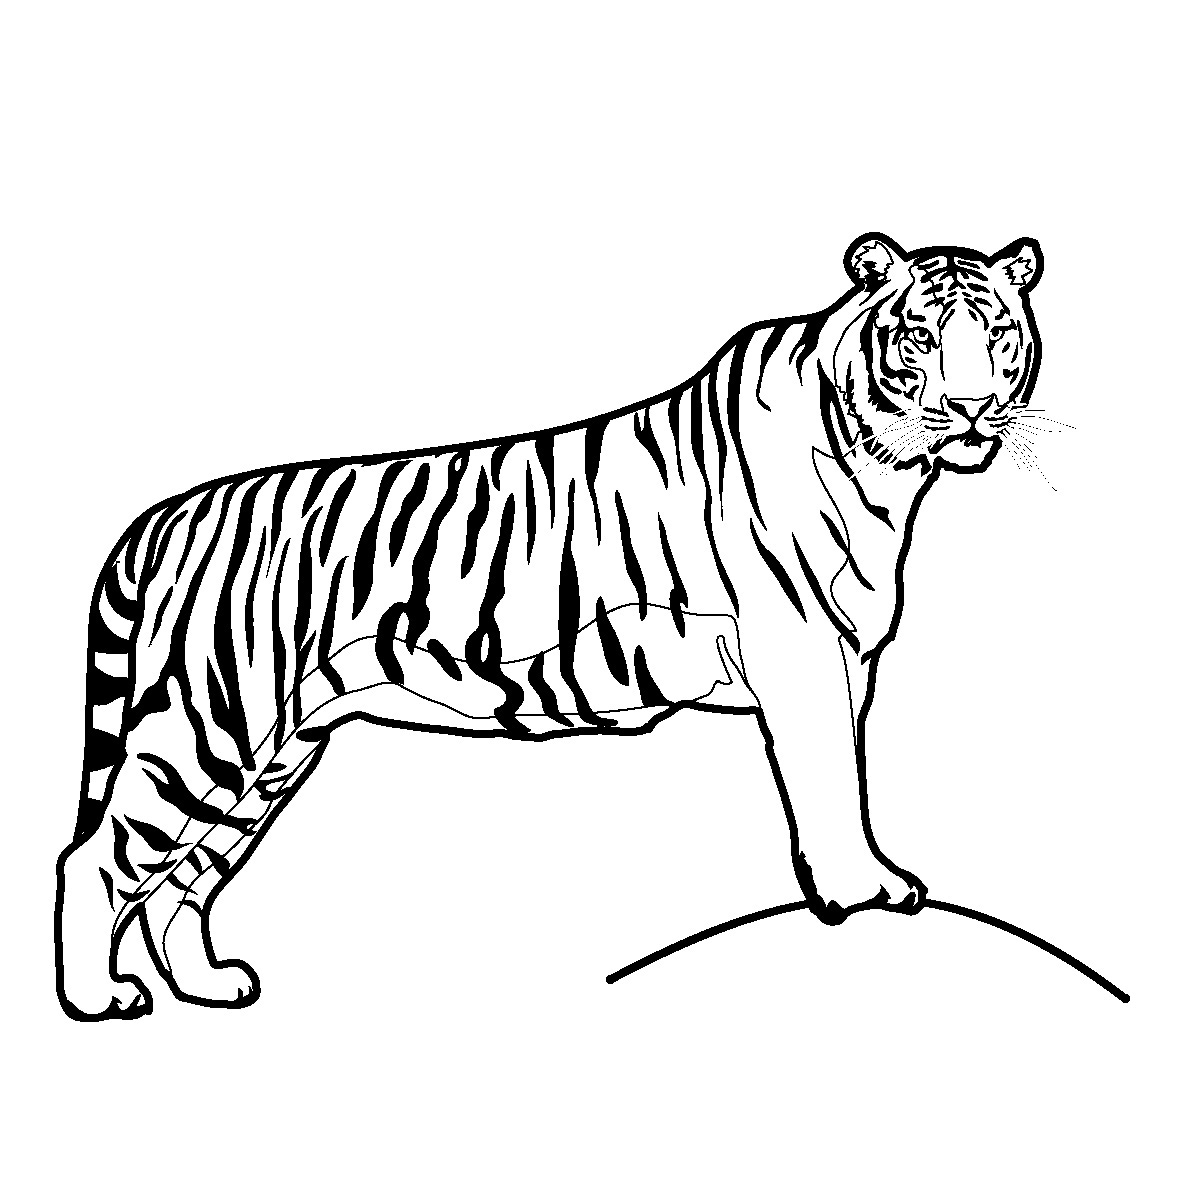 Tiger Clip Art Pictures Black And White | Clipart Panda - Free ...